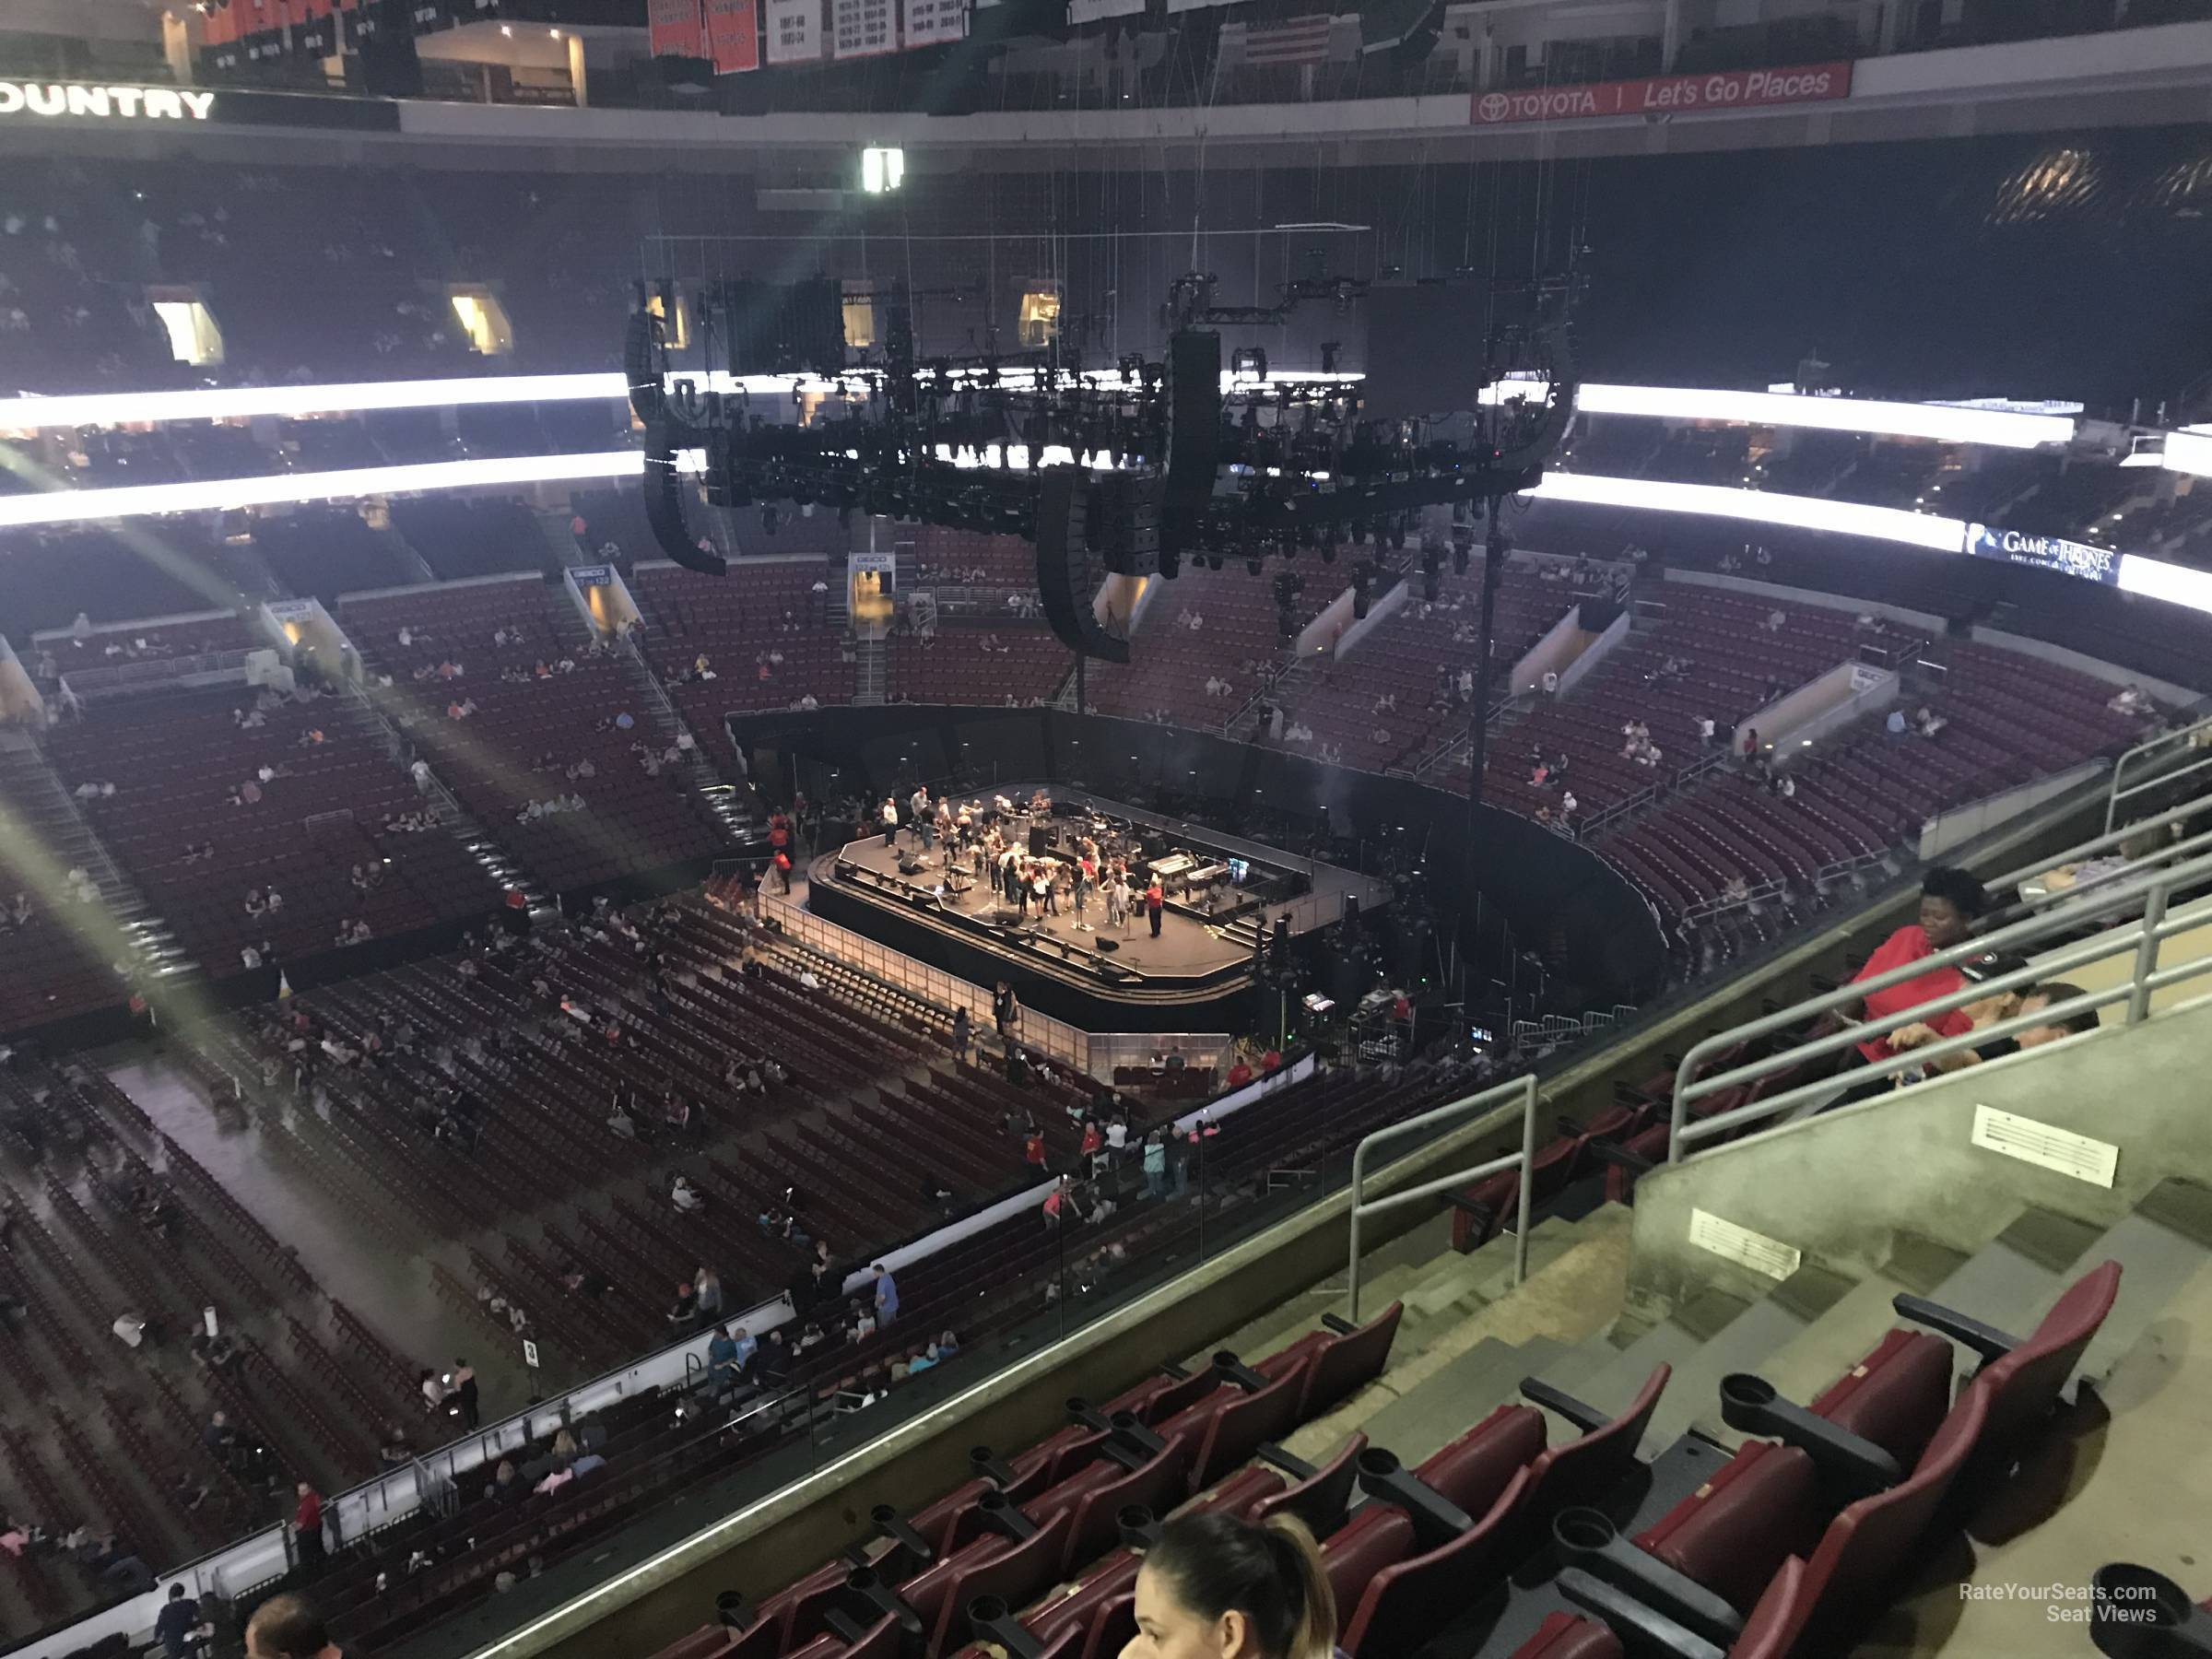 Section 212 seat view